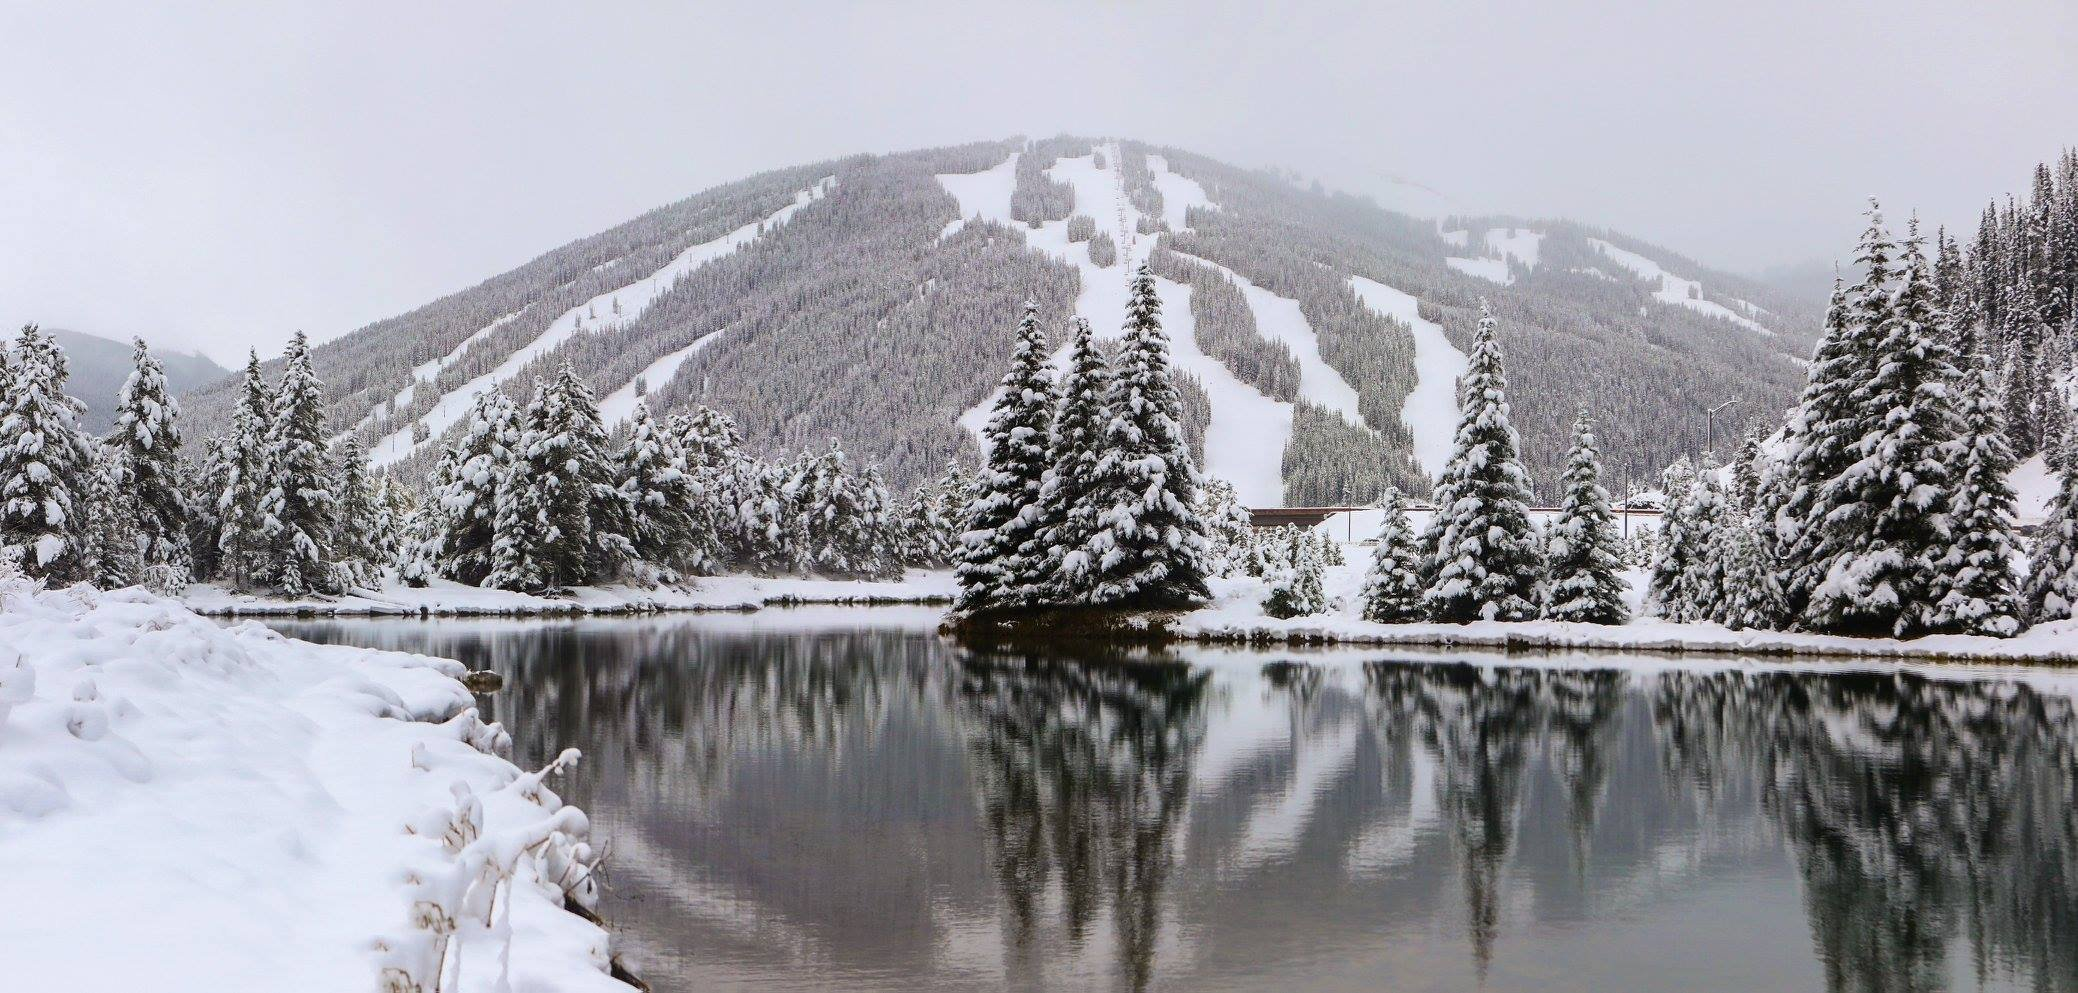 Snow fell on Copper Mountain Resort on Oct. 2, 2017.